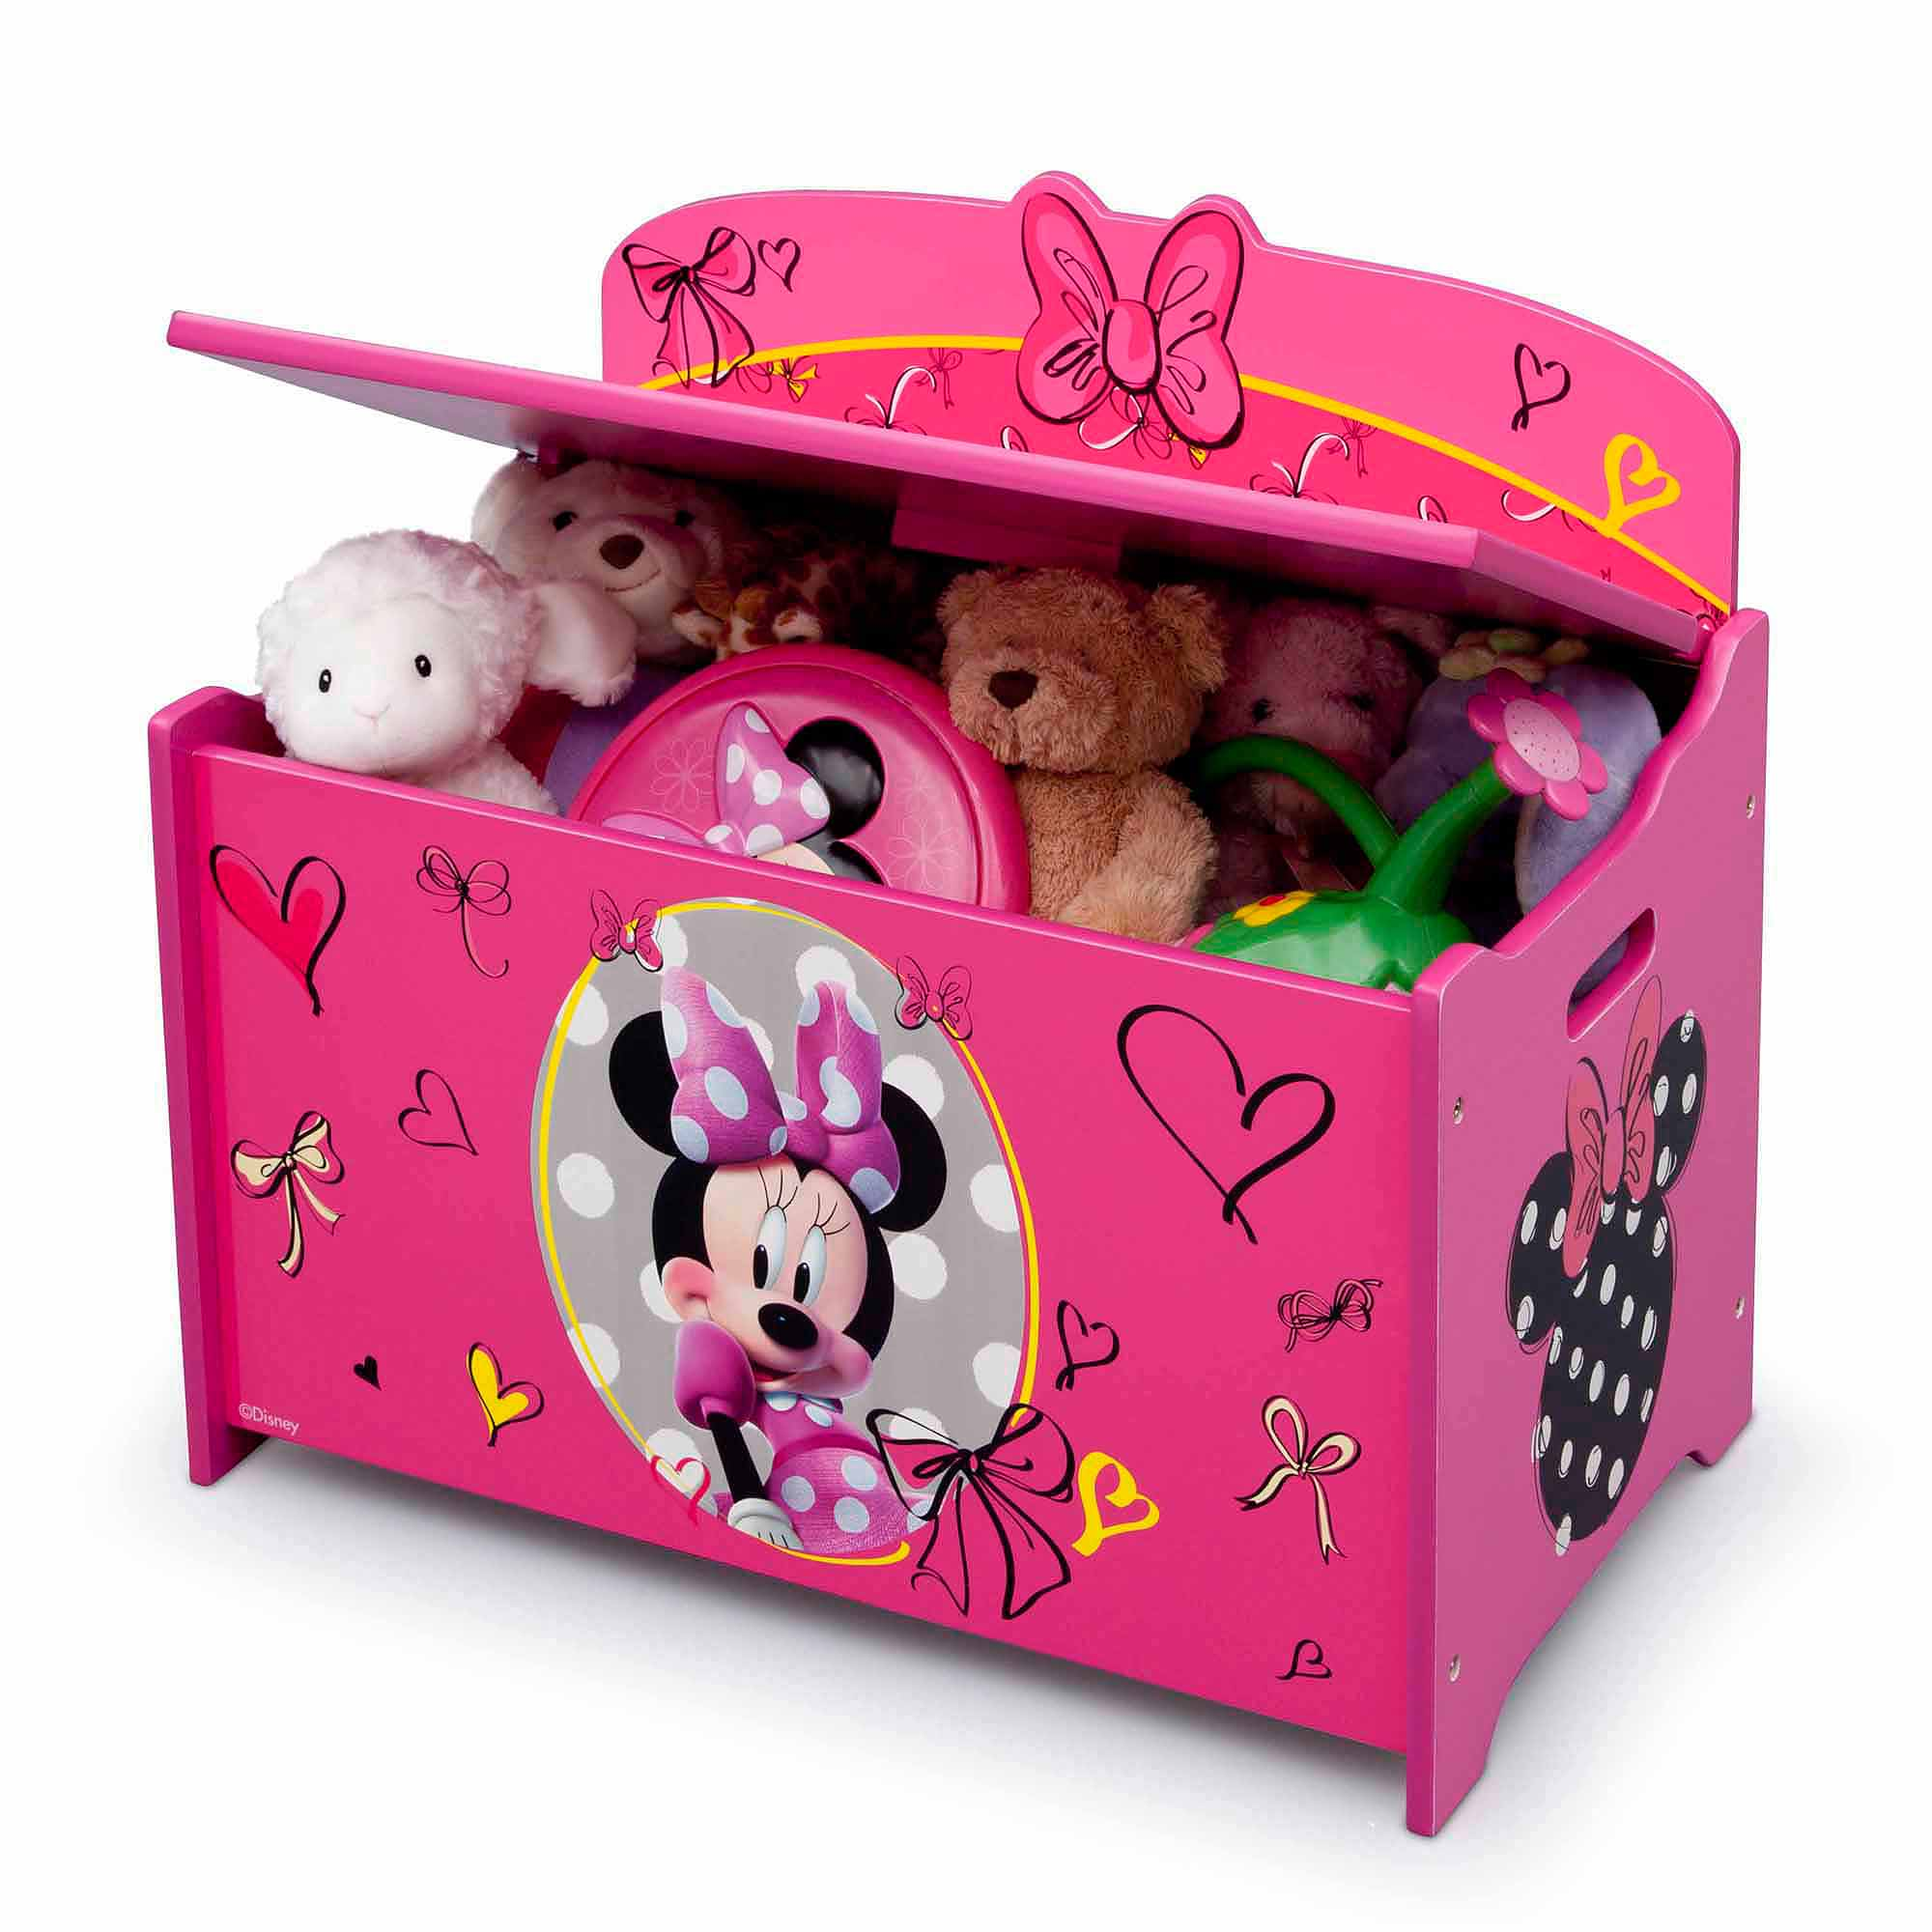 Superbe Disney Minnie Mouse Deluxe Wood Toy Box By Delta Children   Walmart.com